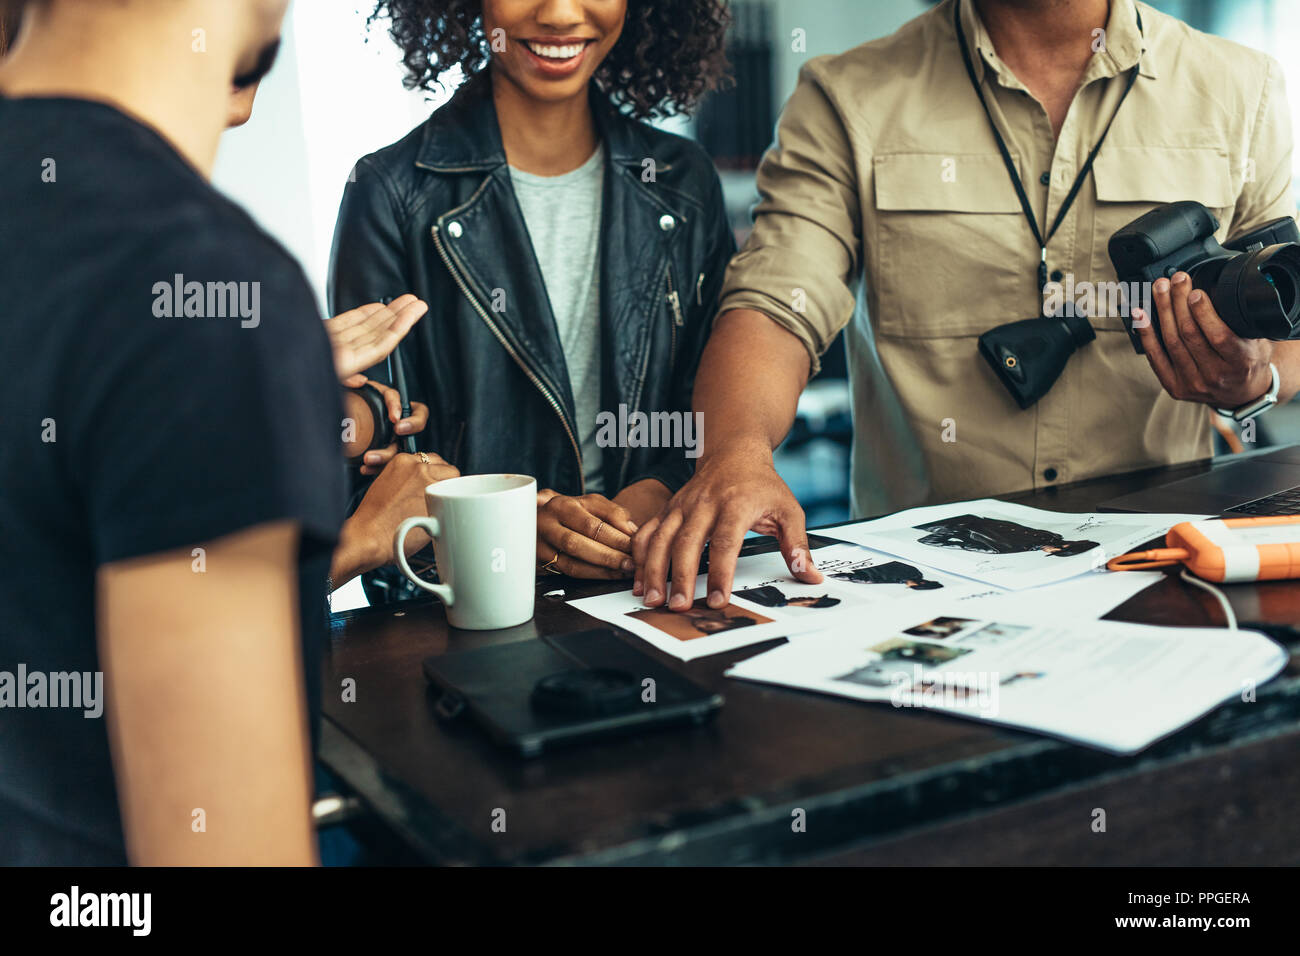 Photographer looking at photographs with model and his team. Photographer discussing about the photo shoot with his team. - Stock Image